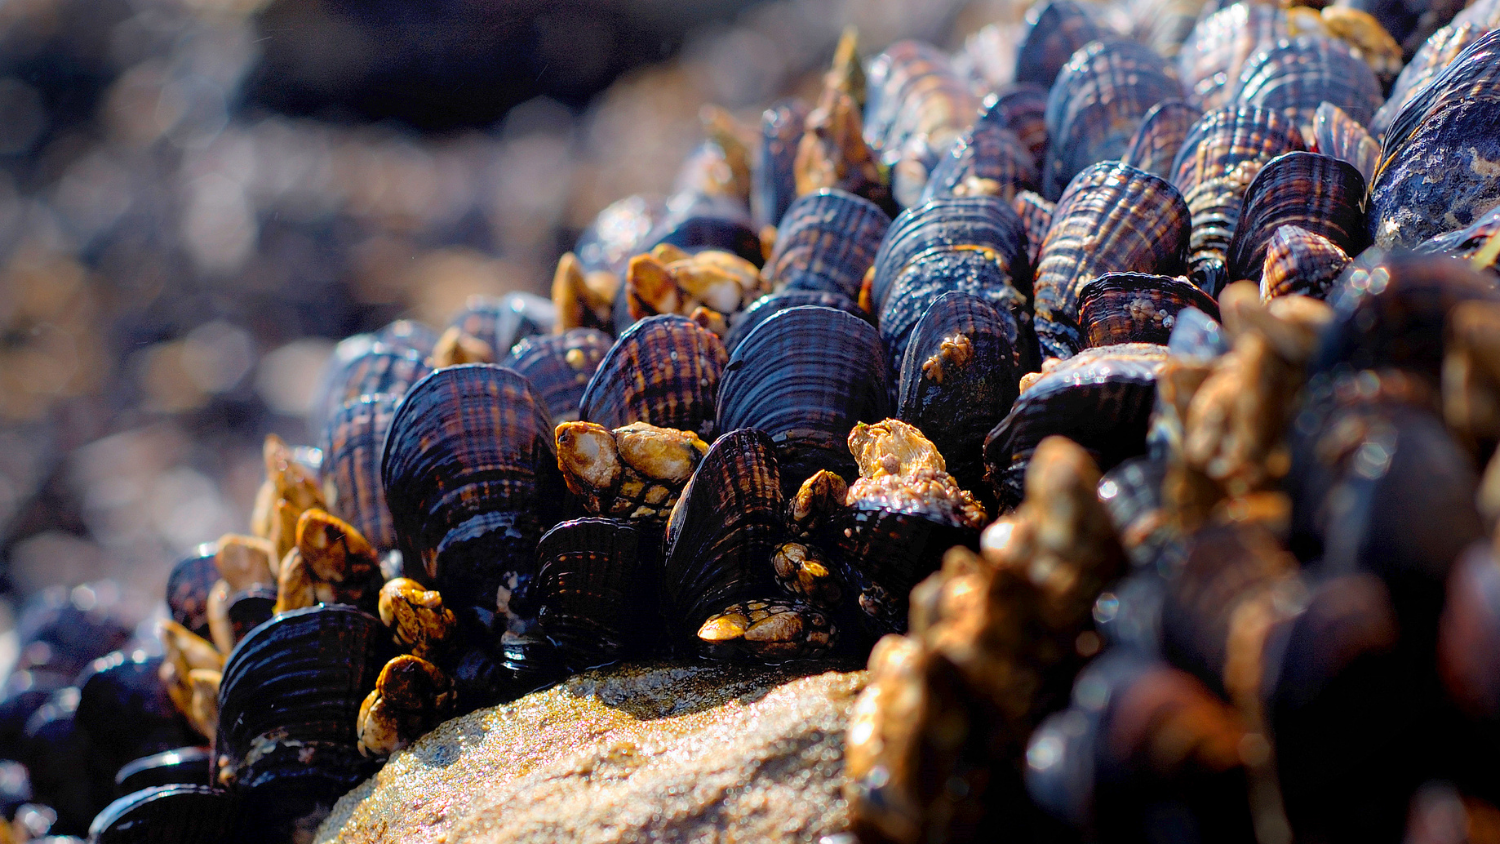 Image of mollusks